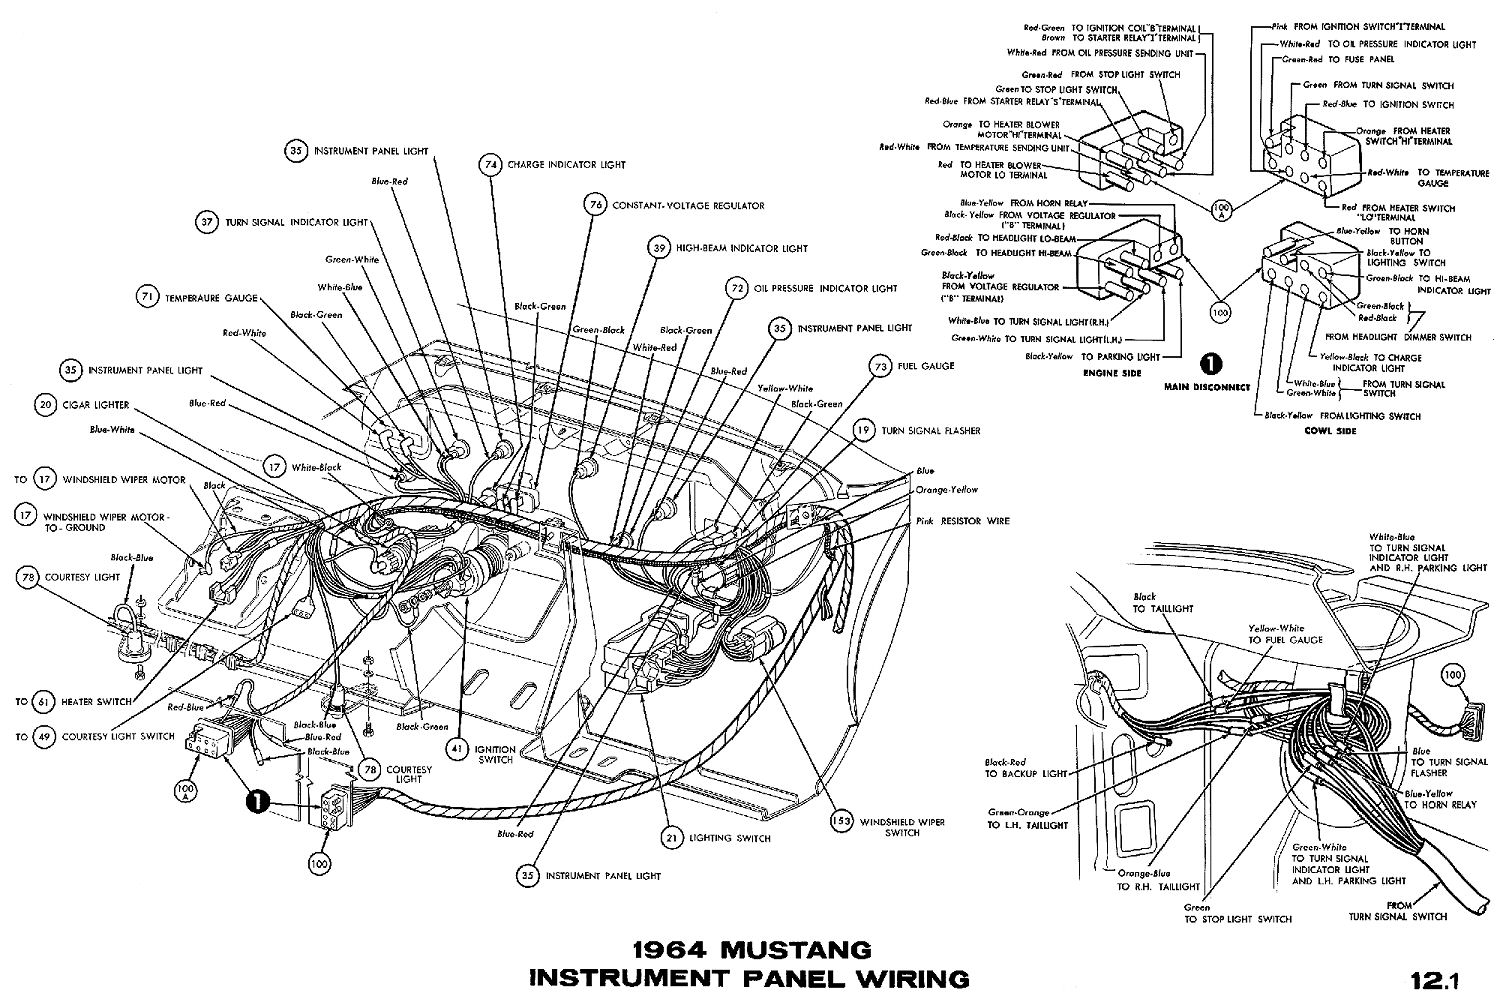 1964 mustang wiring diagrams average joe restoration instrument cluster connections swarovskicordoba